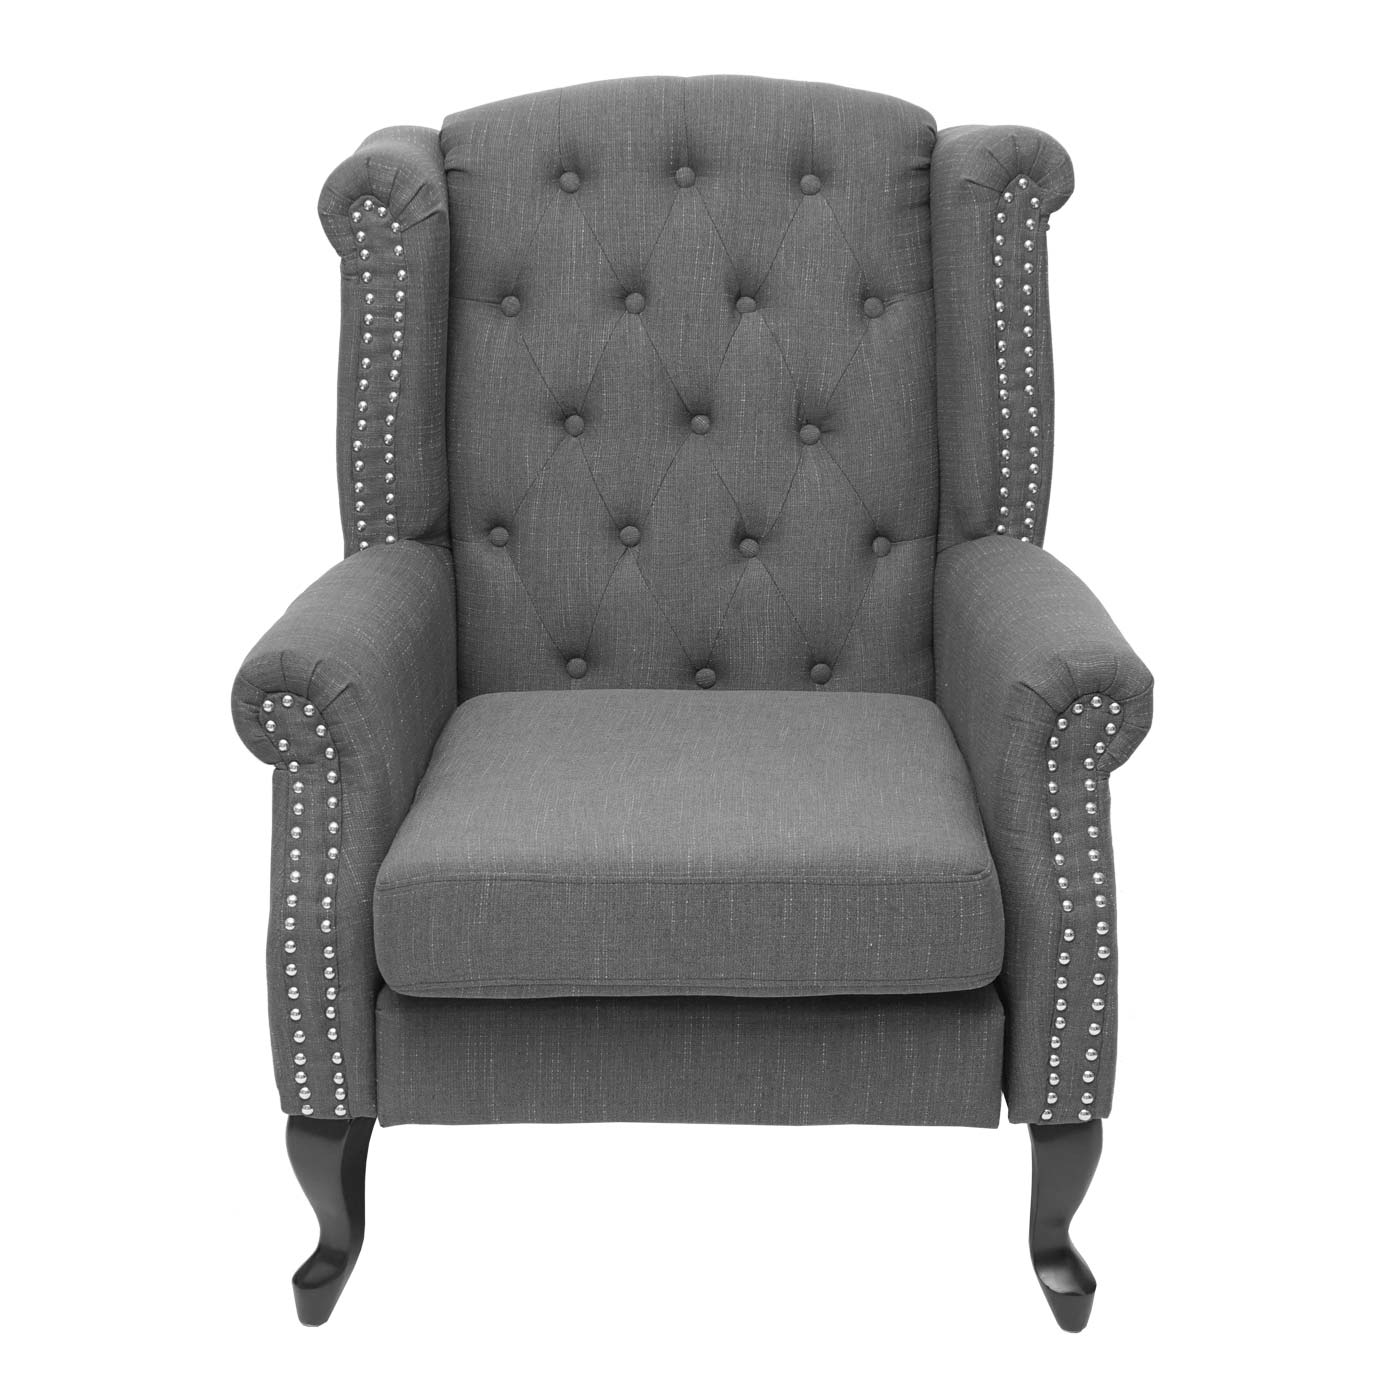 Chesterfield Sessel Frontansicht